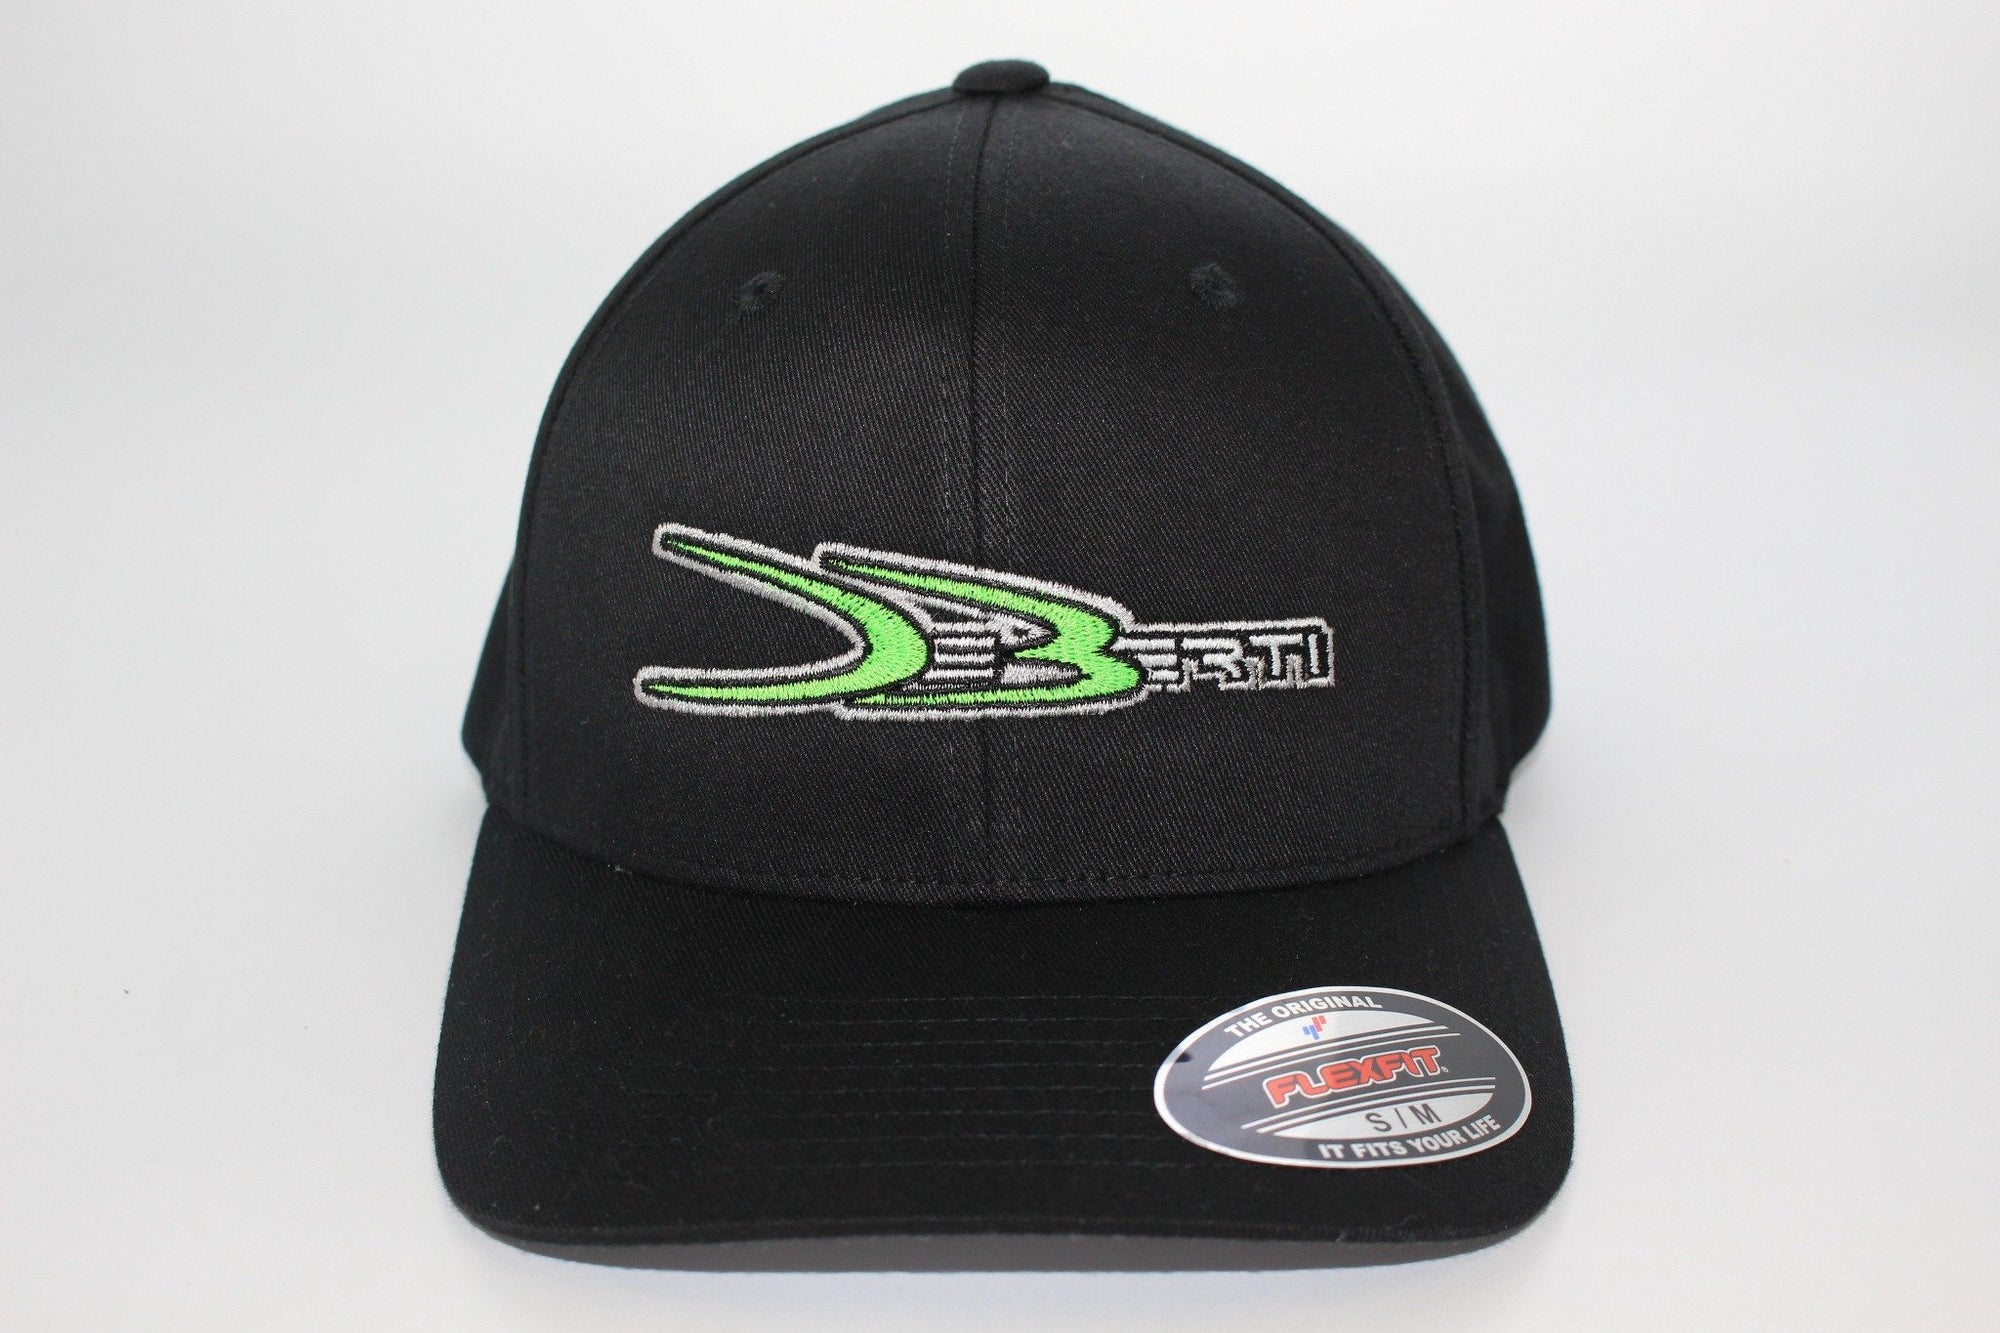 Black Flex Fit hat with green DeBerti logo